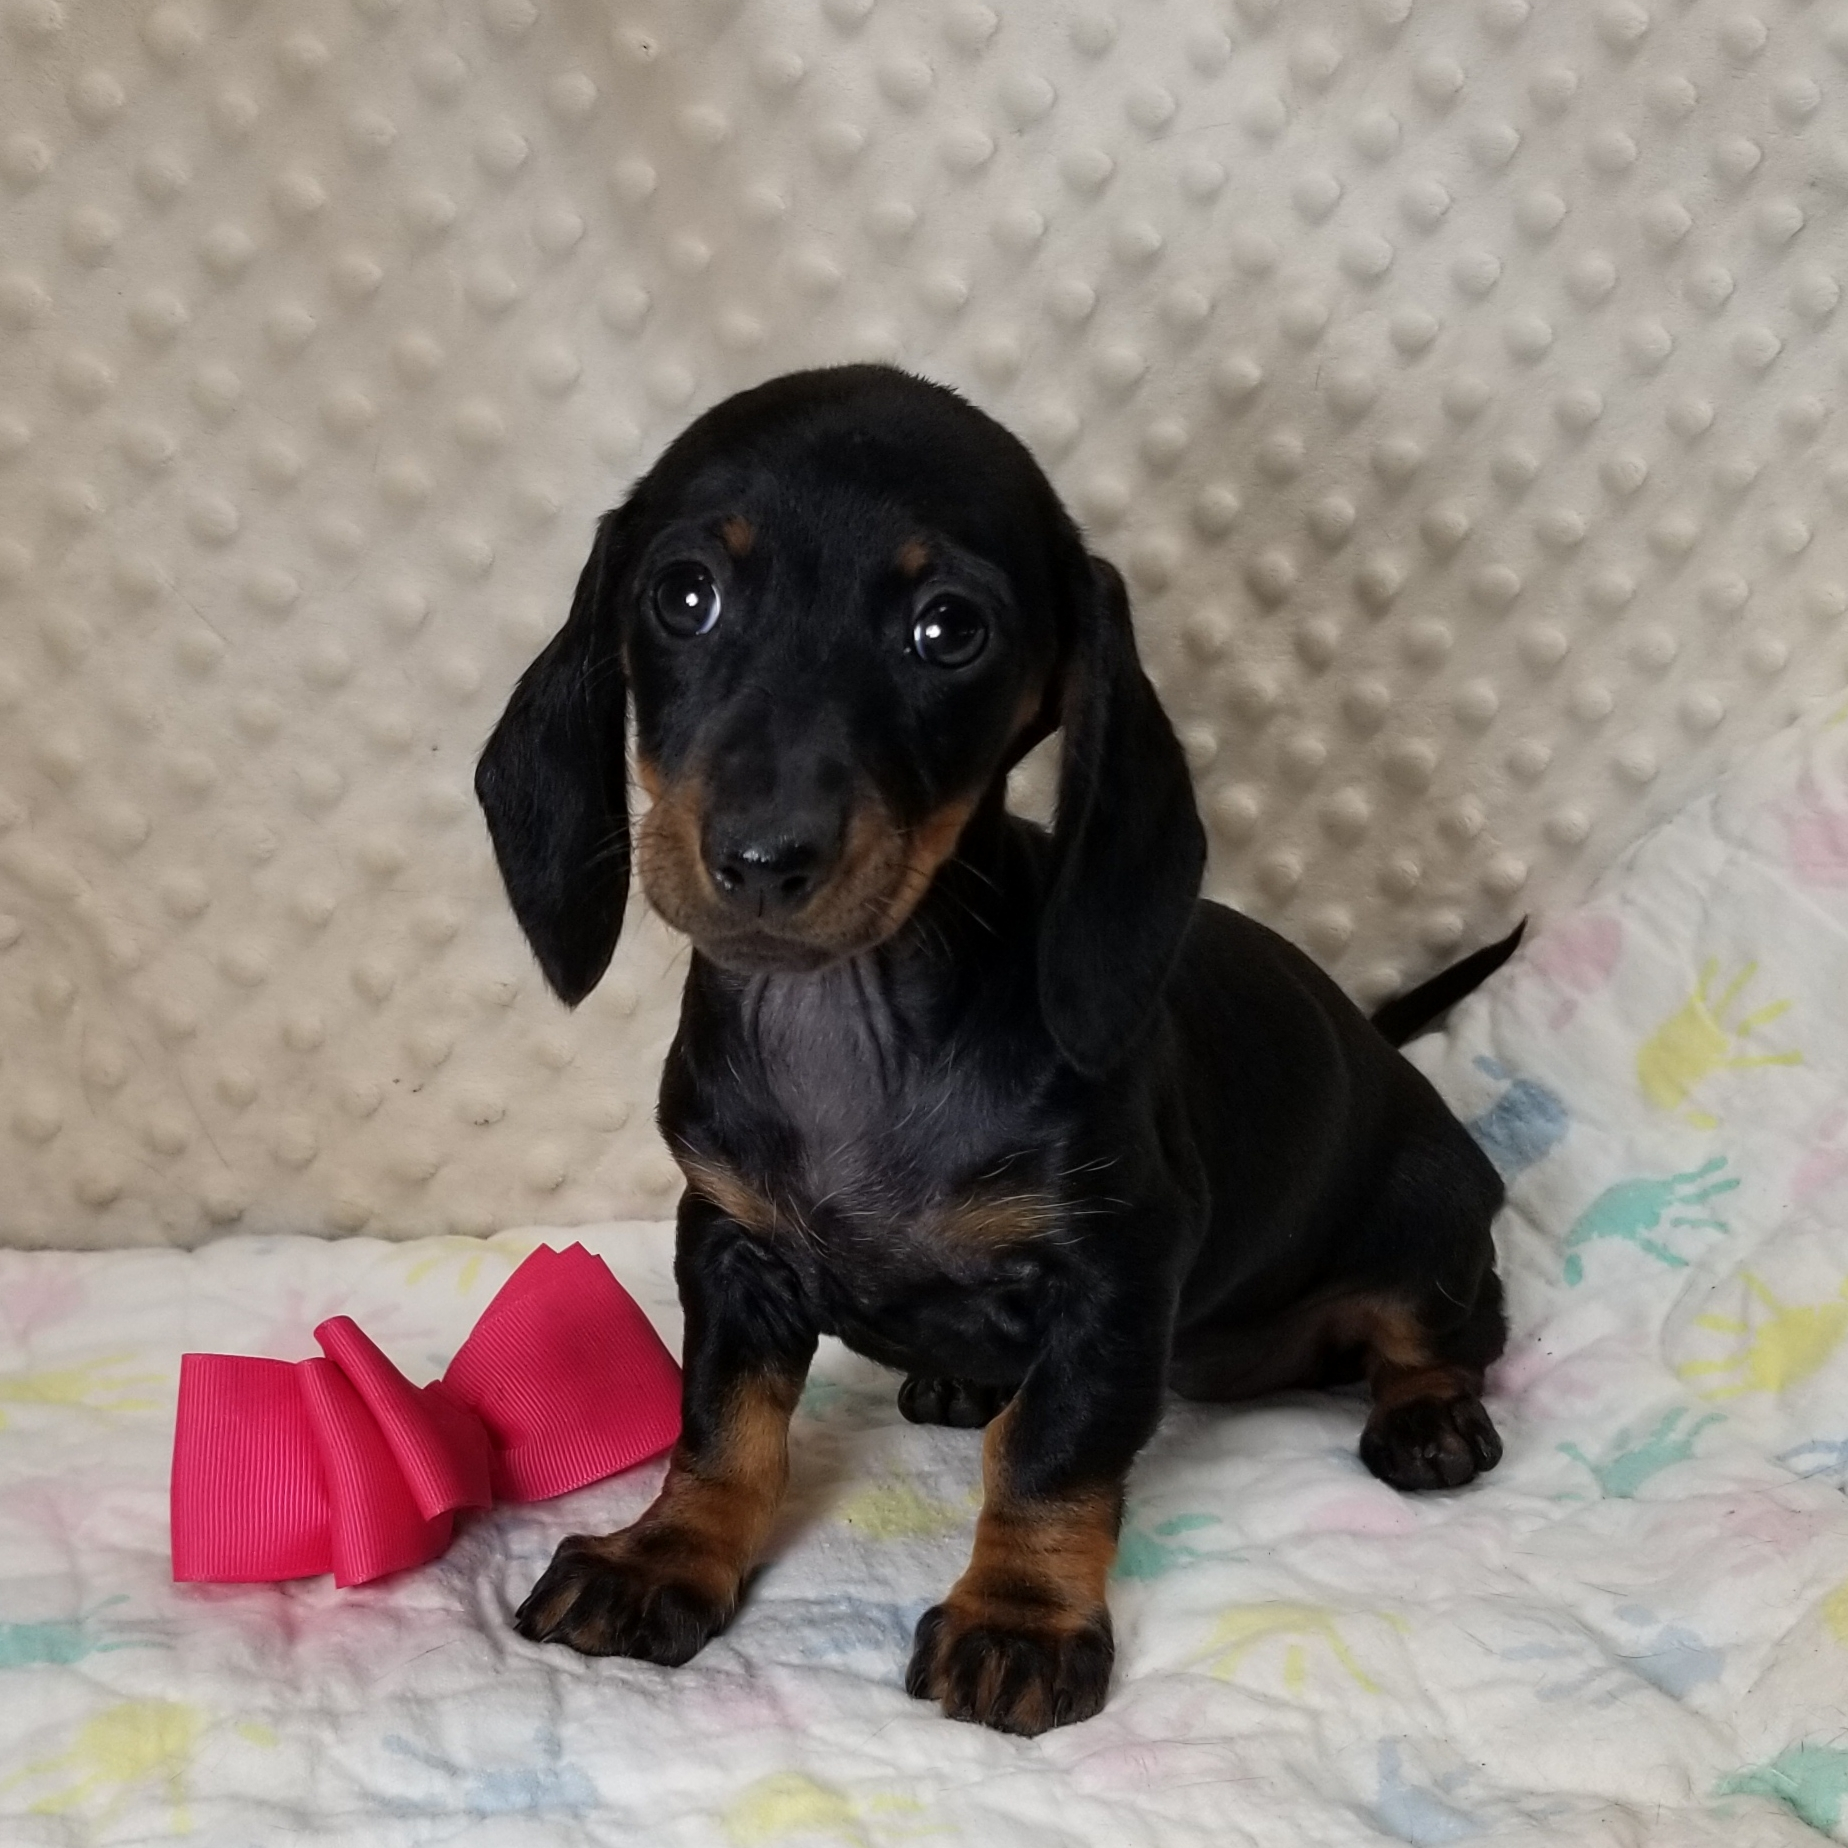 CKC Black & Tan females Smooth Coat Miniature Dachshund, Born 8/17/2020, $1500 each